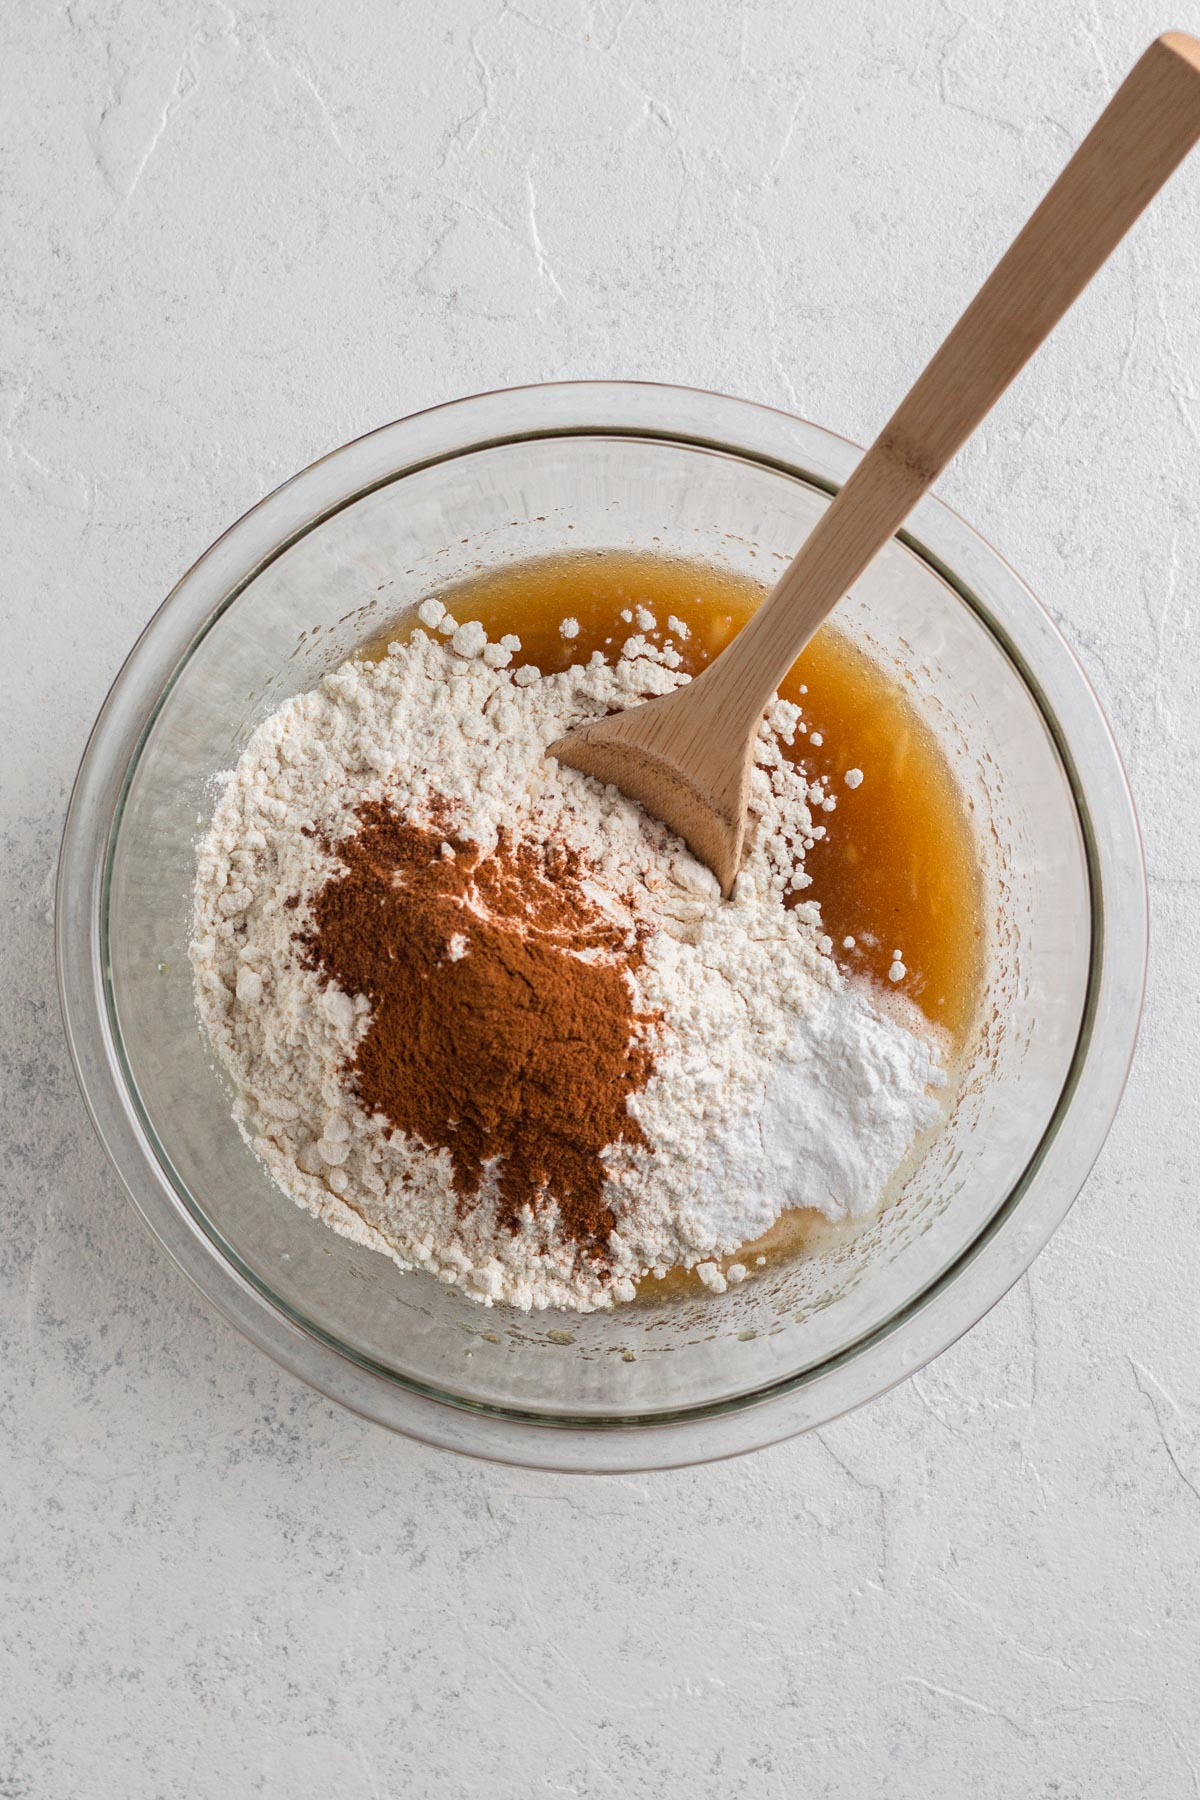 dry ingredients added to wet ingredients in a glass bowl with a wooden spoon